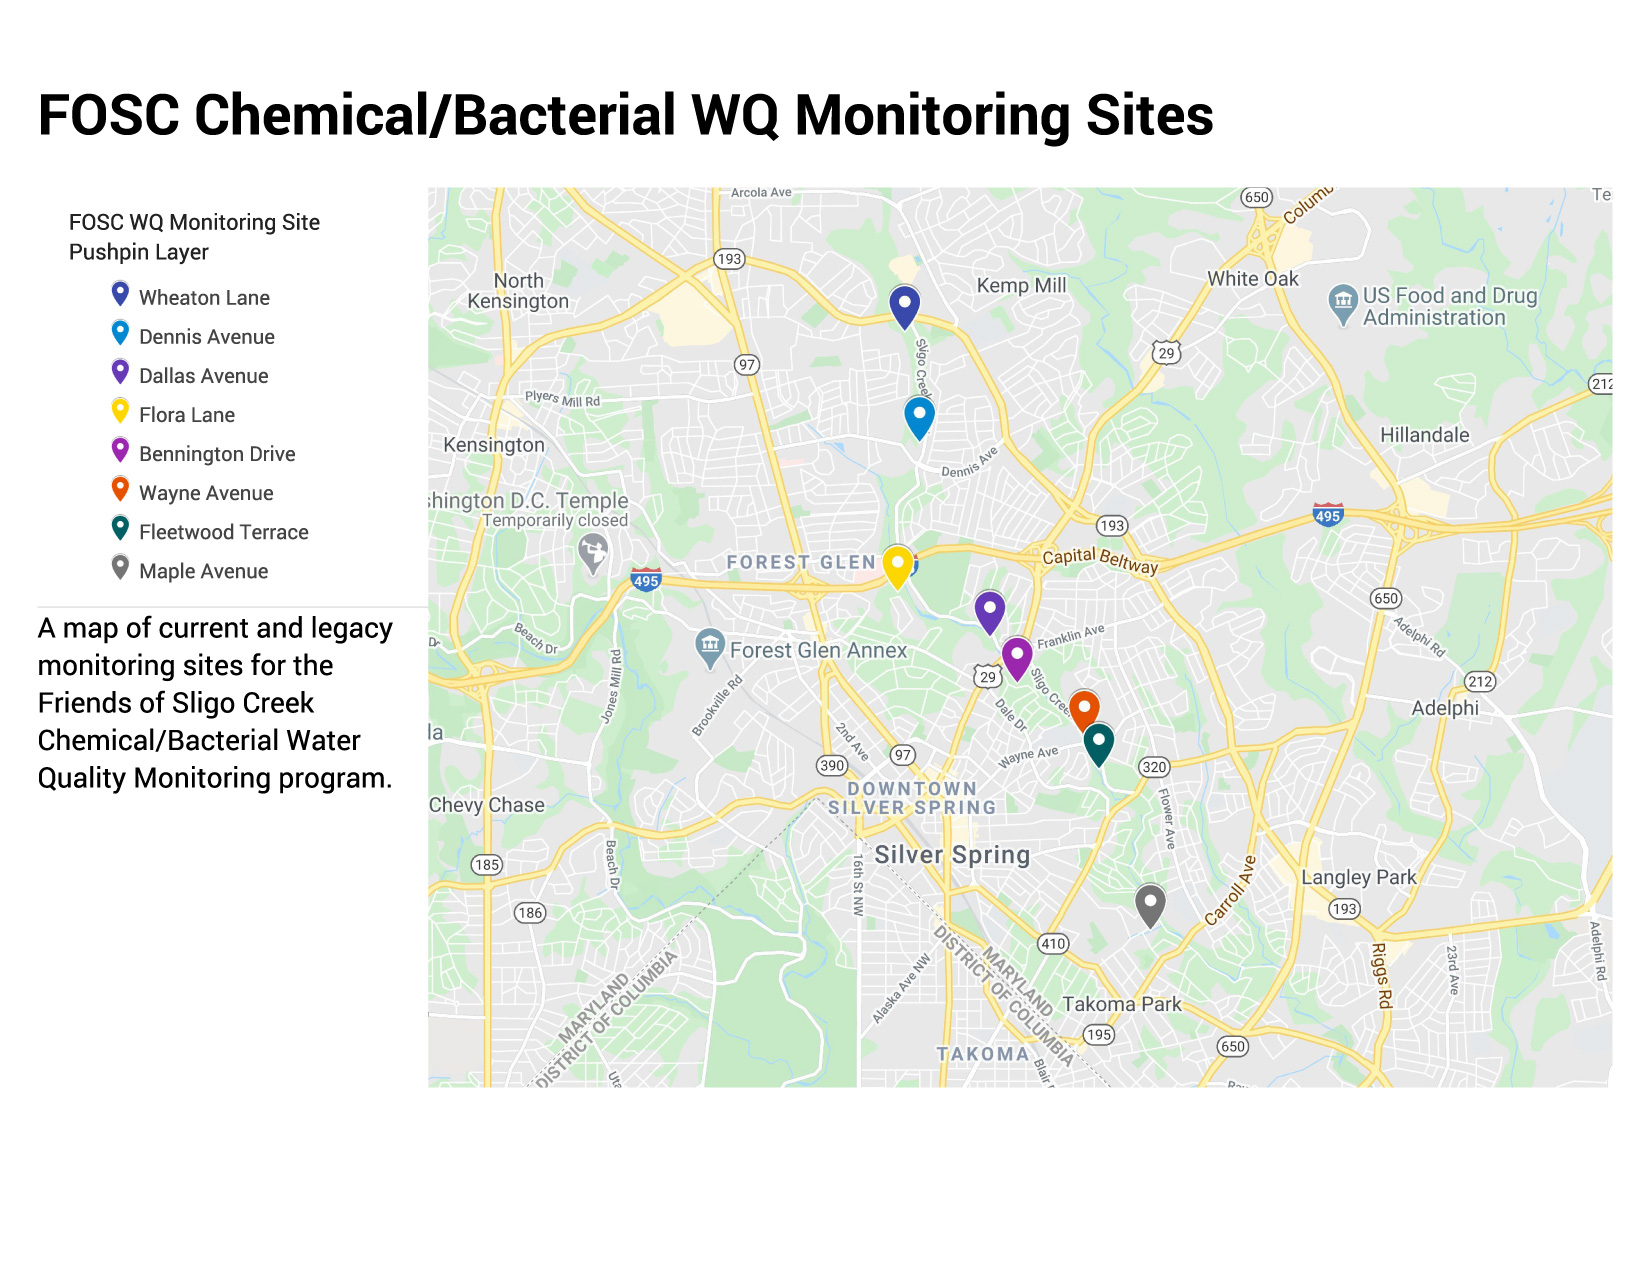 Map of FOSC Physical/Chemical Water Quality Monitoring Sites